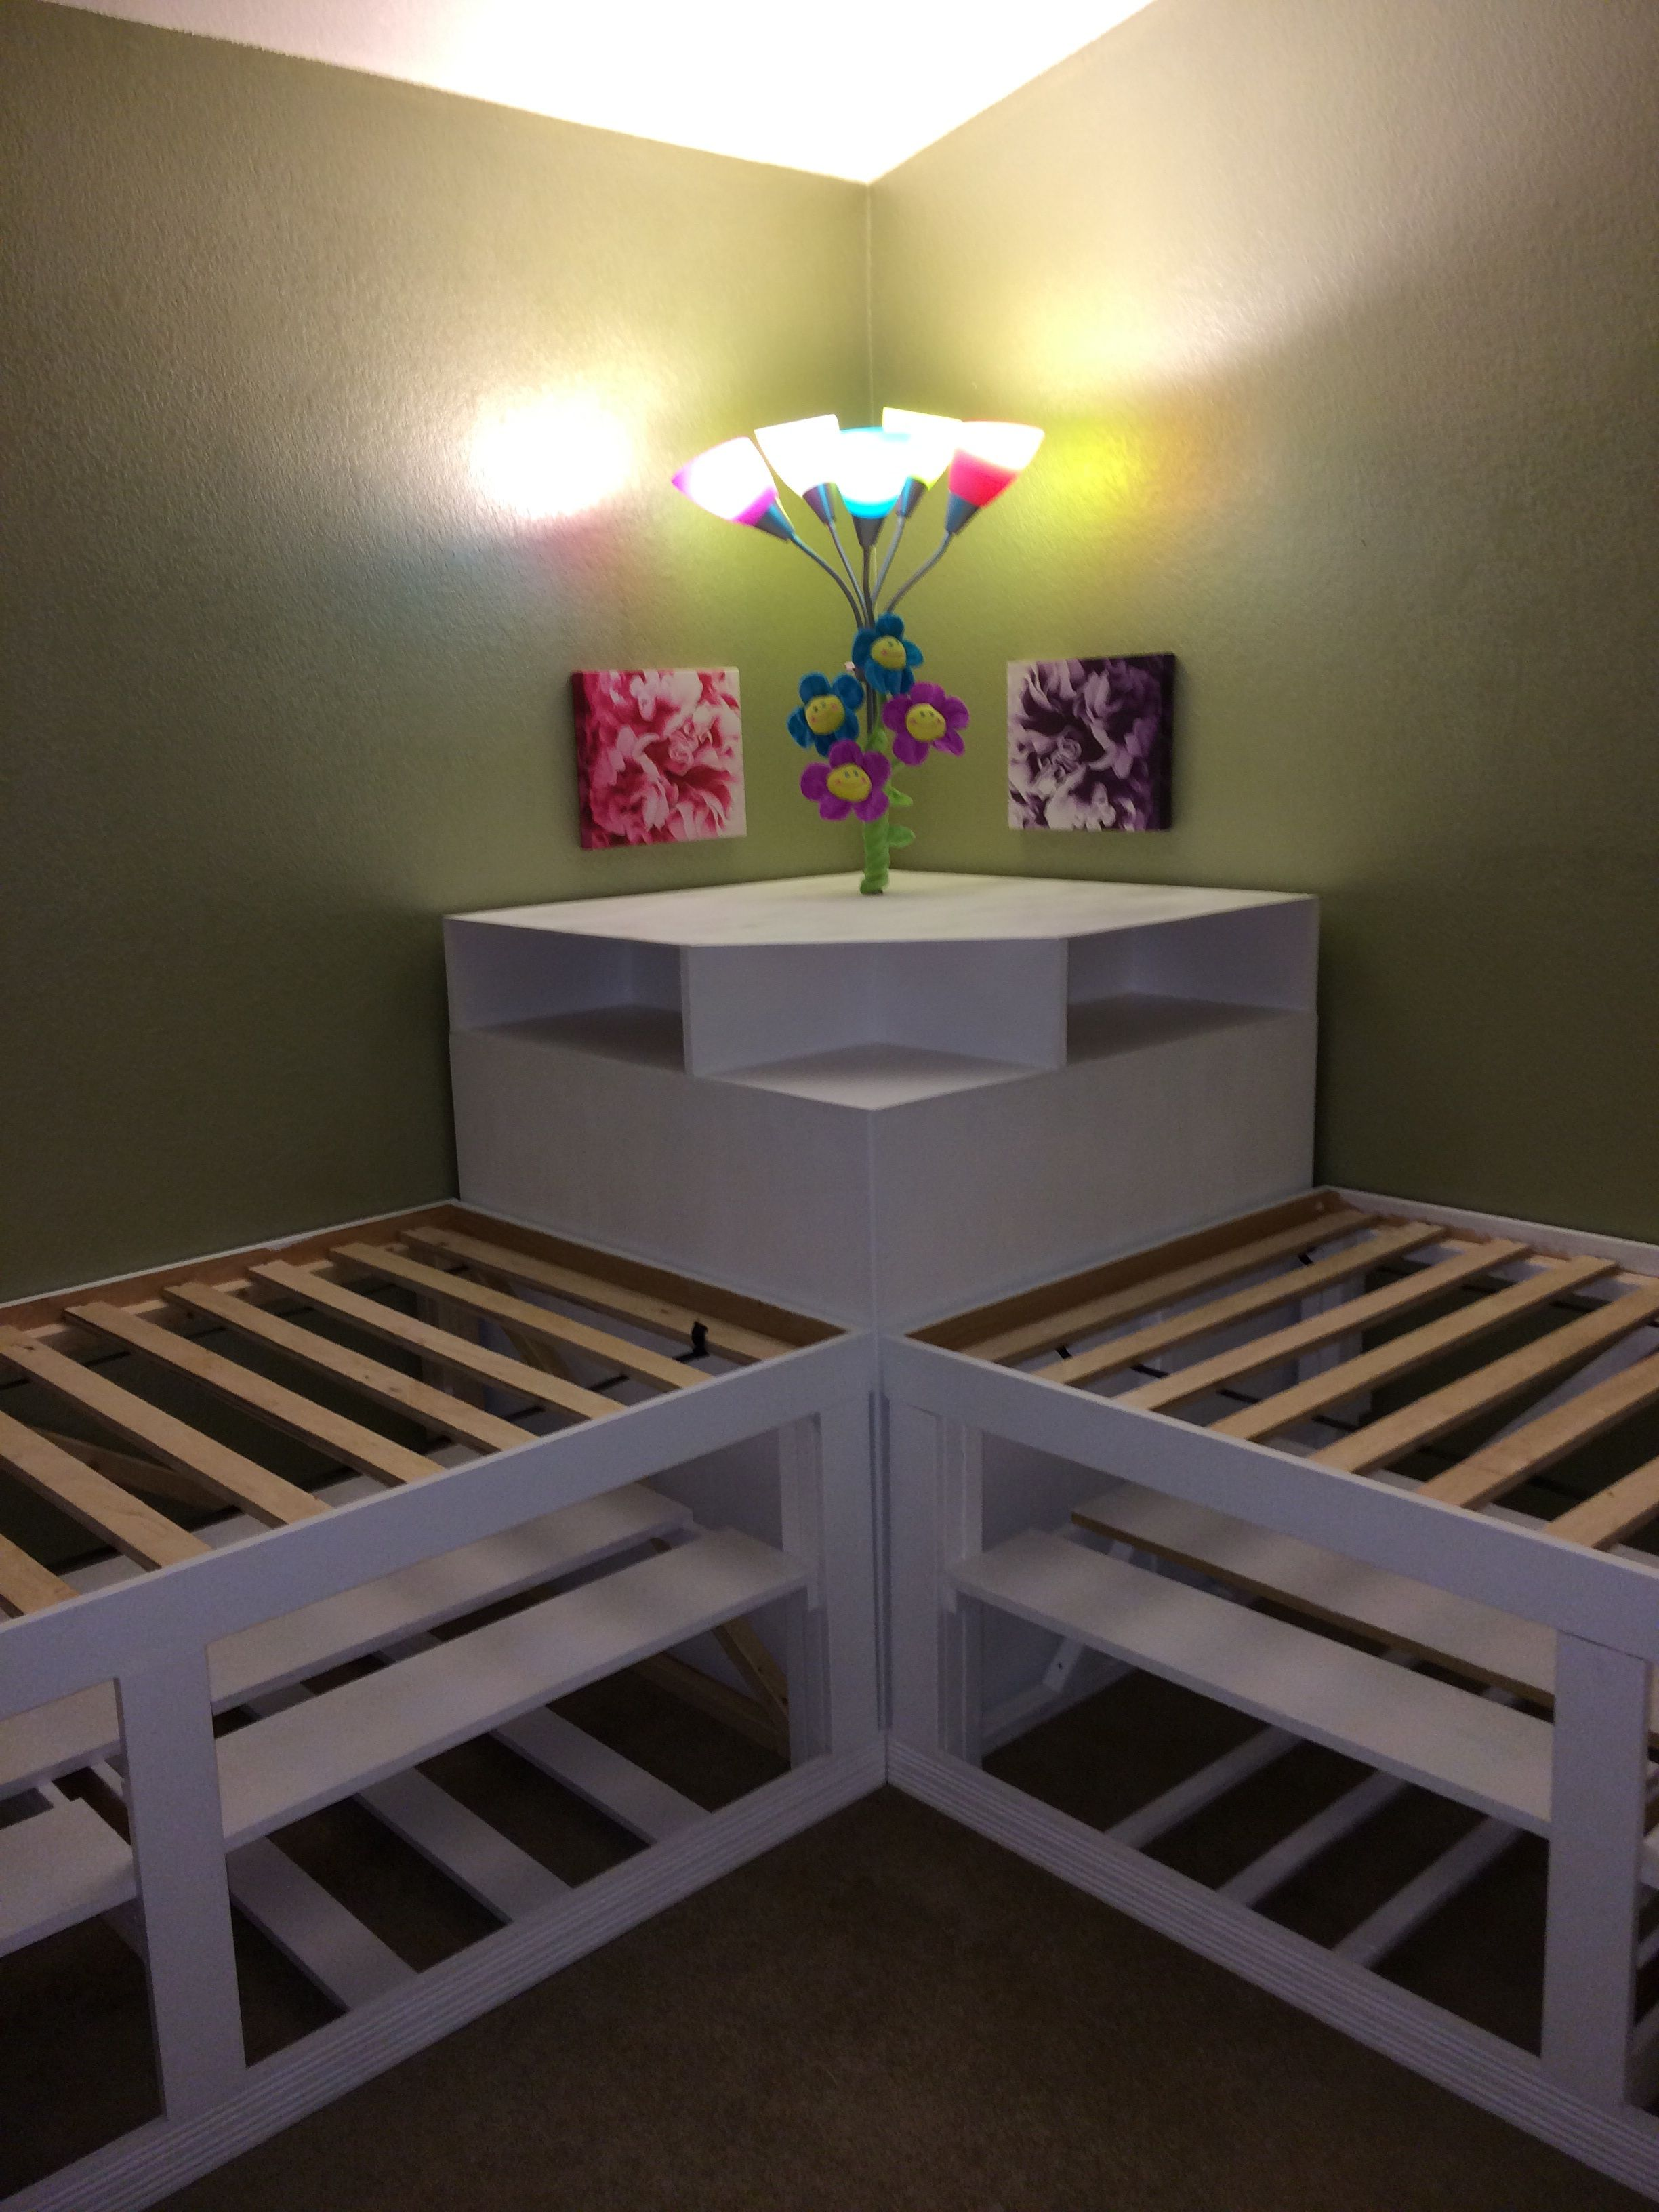 l shaped twin beds ikea on p a href http www ana white com sites default files 3154843017 1394913134 jpg download shared girls bedroom shared girls room boy and girl shared bedroom shared girls bedroom